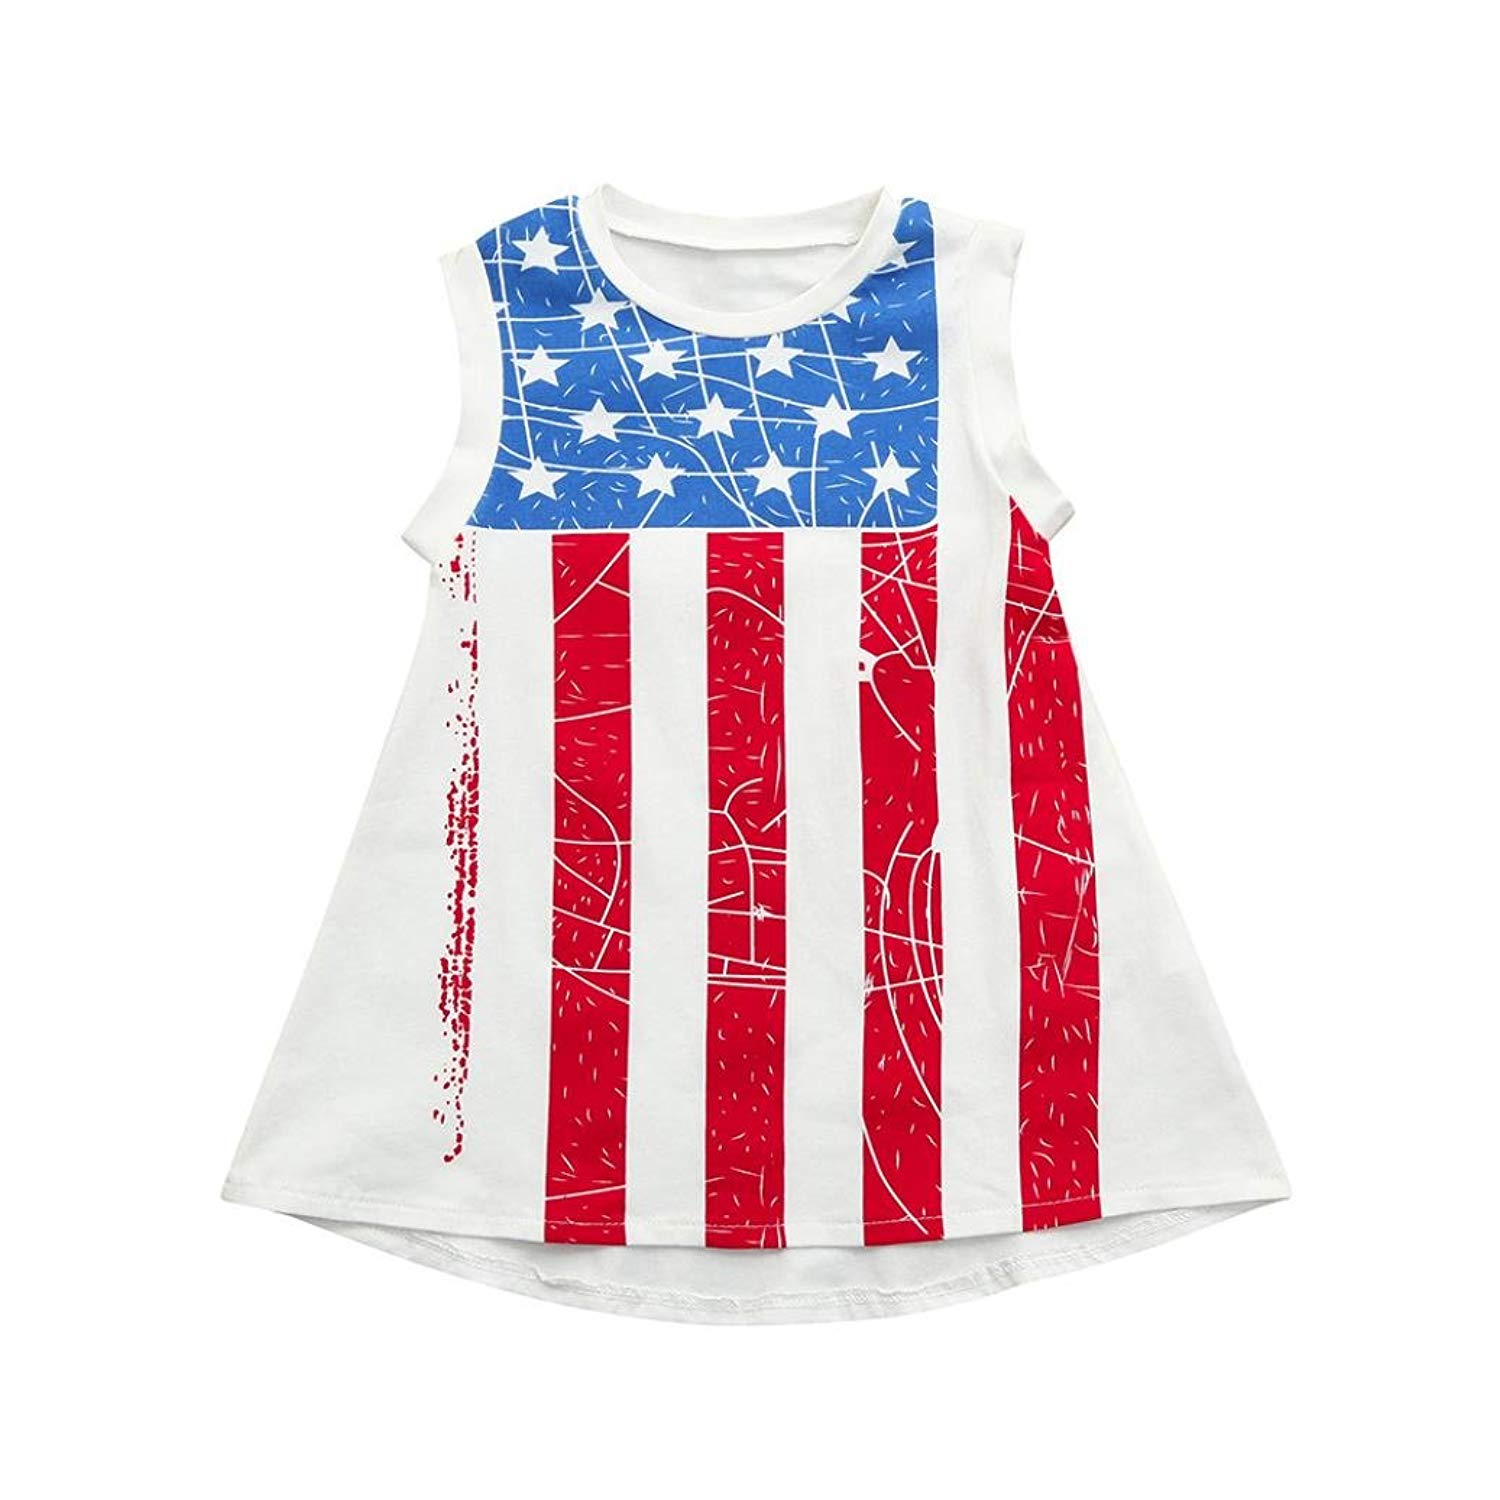 TiTCool Little Girls Sleeveless Dress, Girls Independence Day National Flag Print Dress Size 1-4T